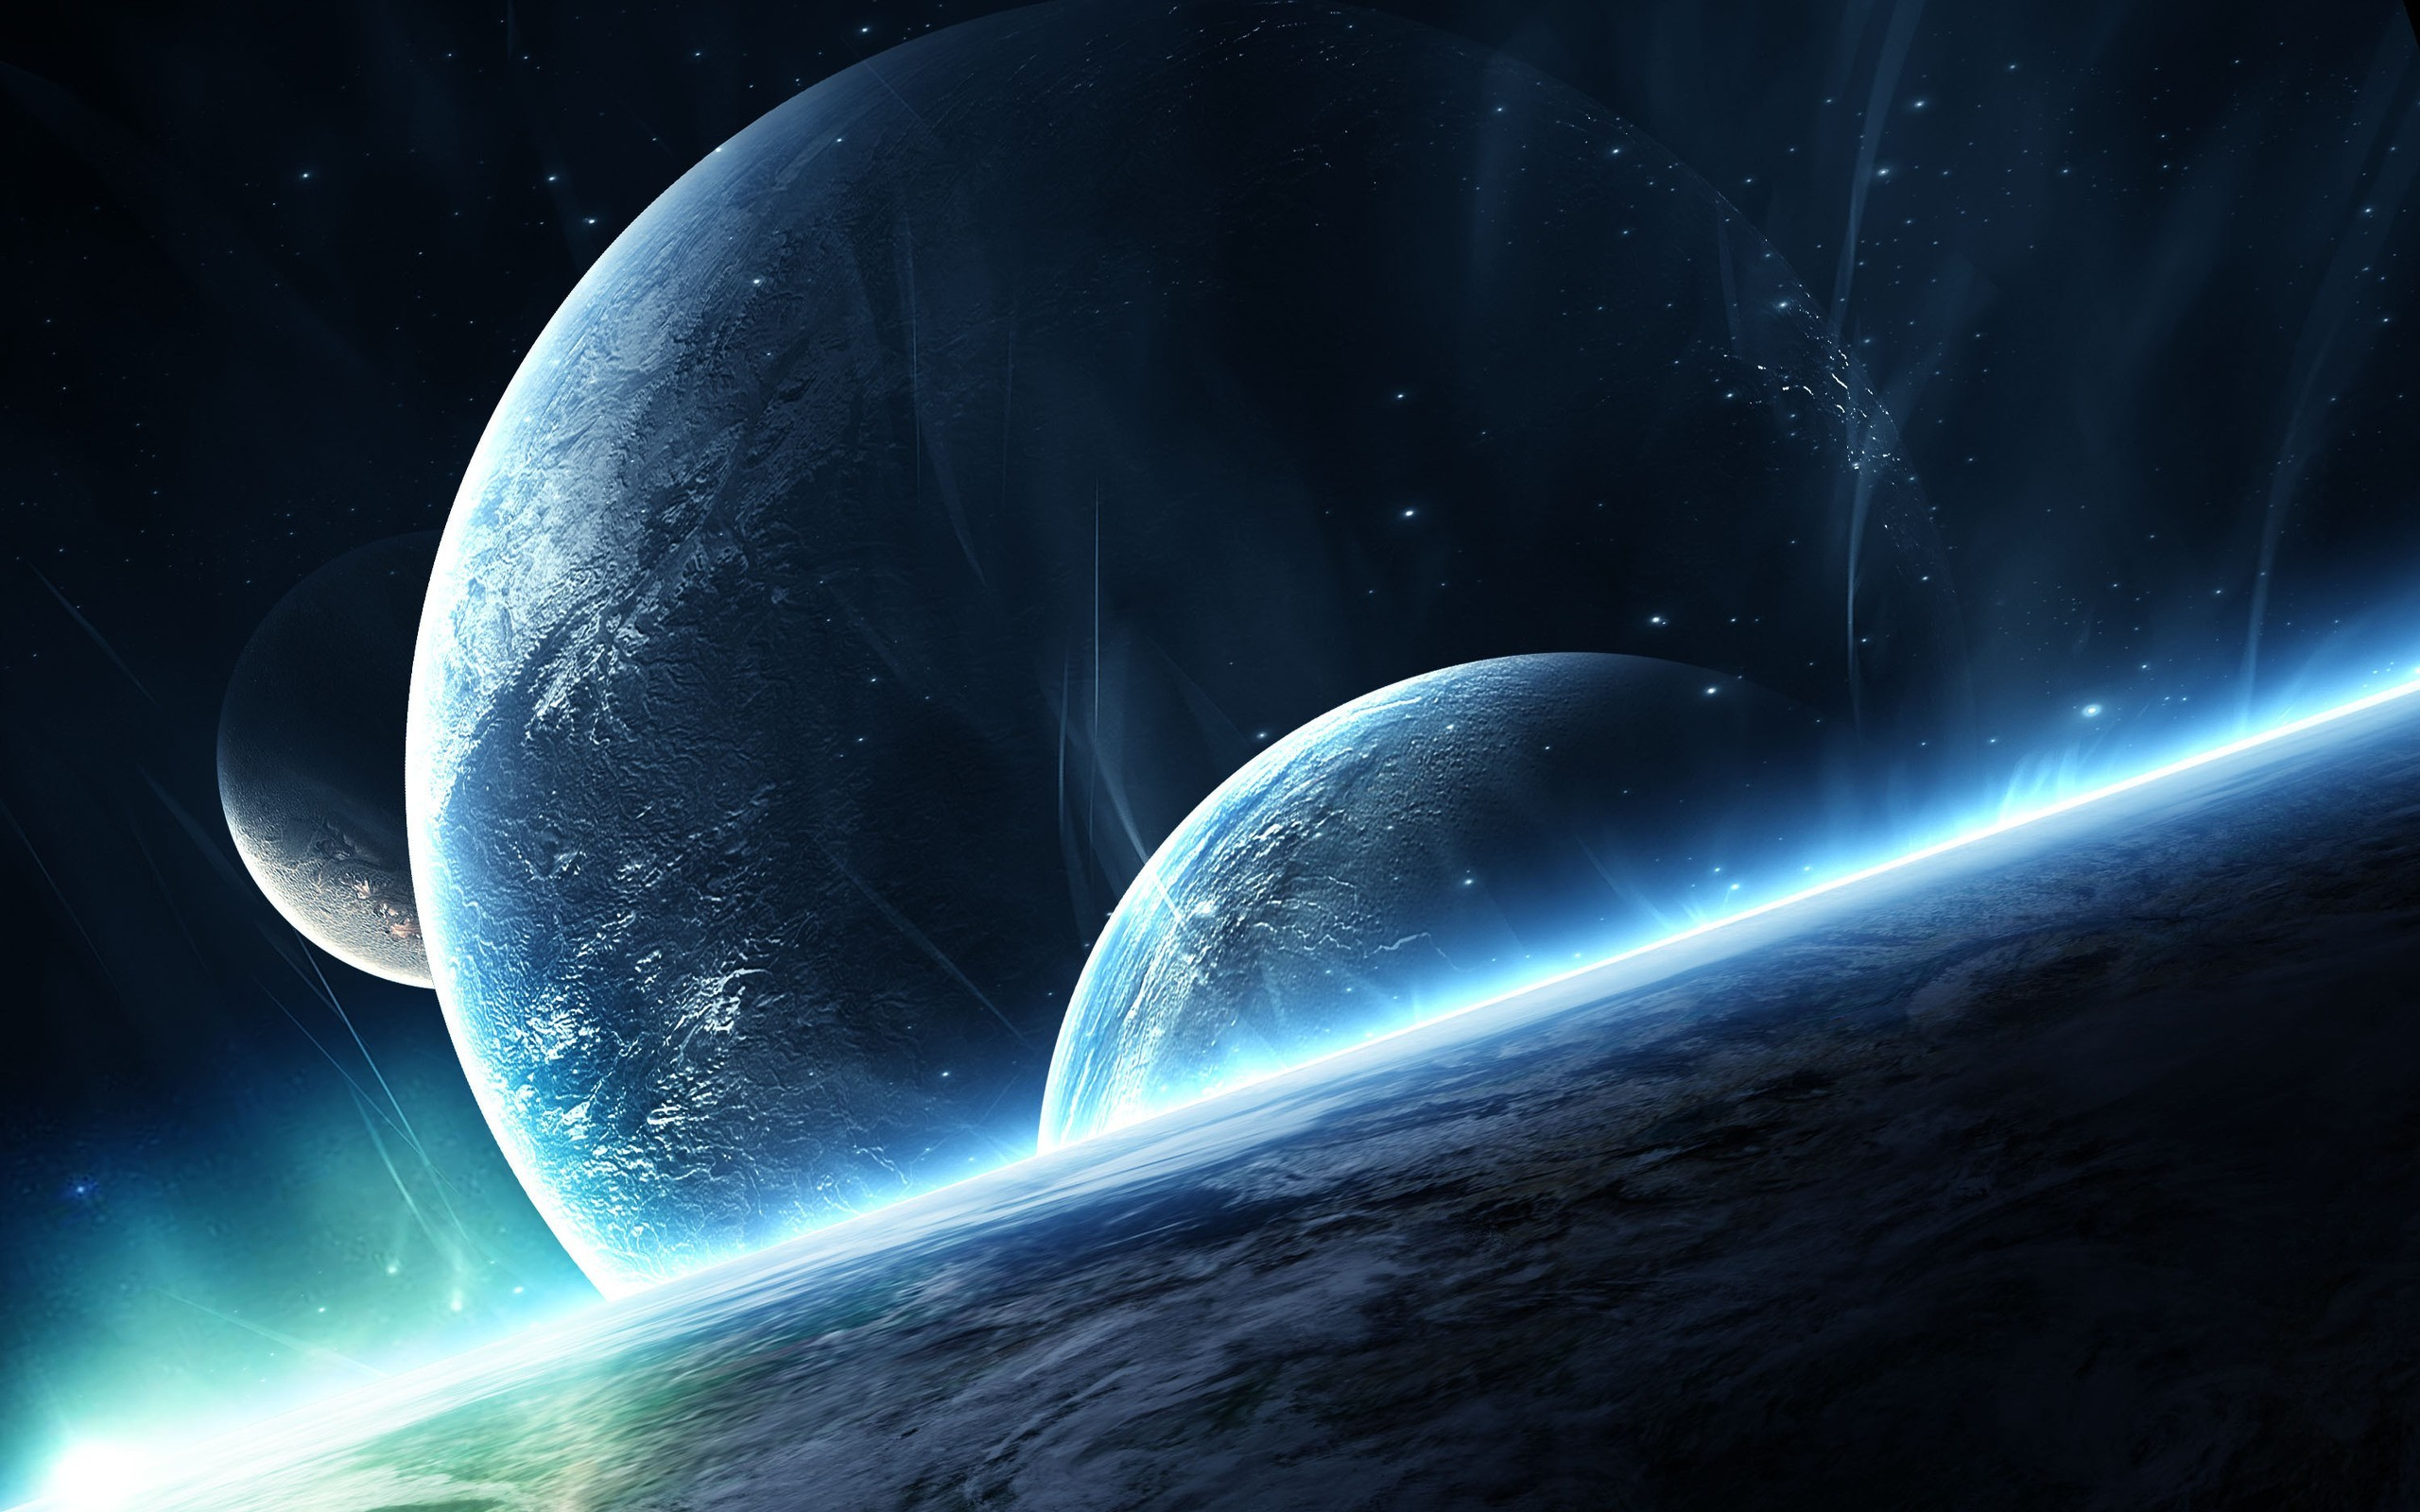 Outer Space Images Free Download by Hisham Chattey